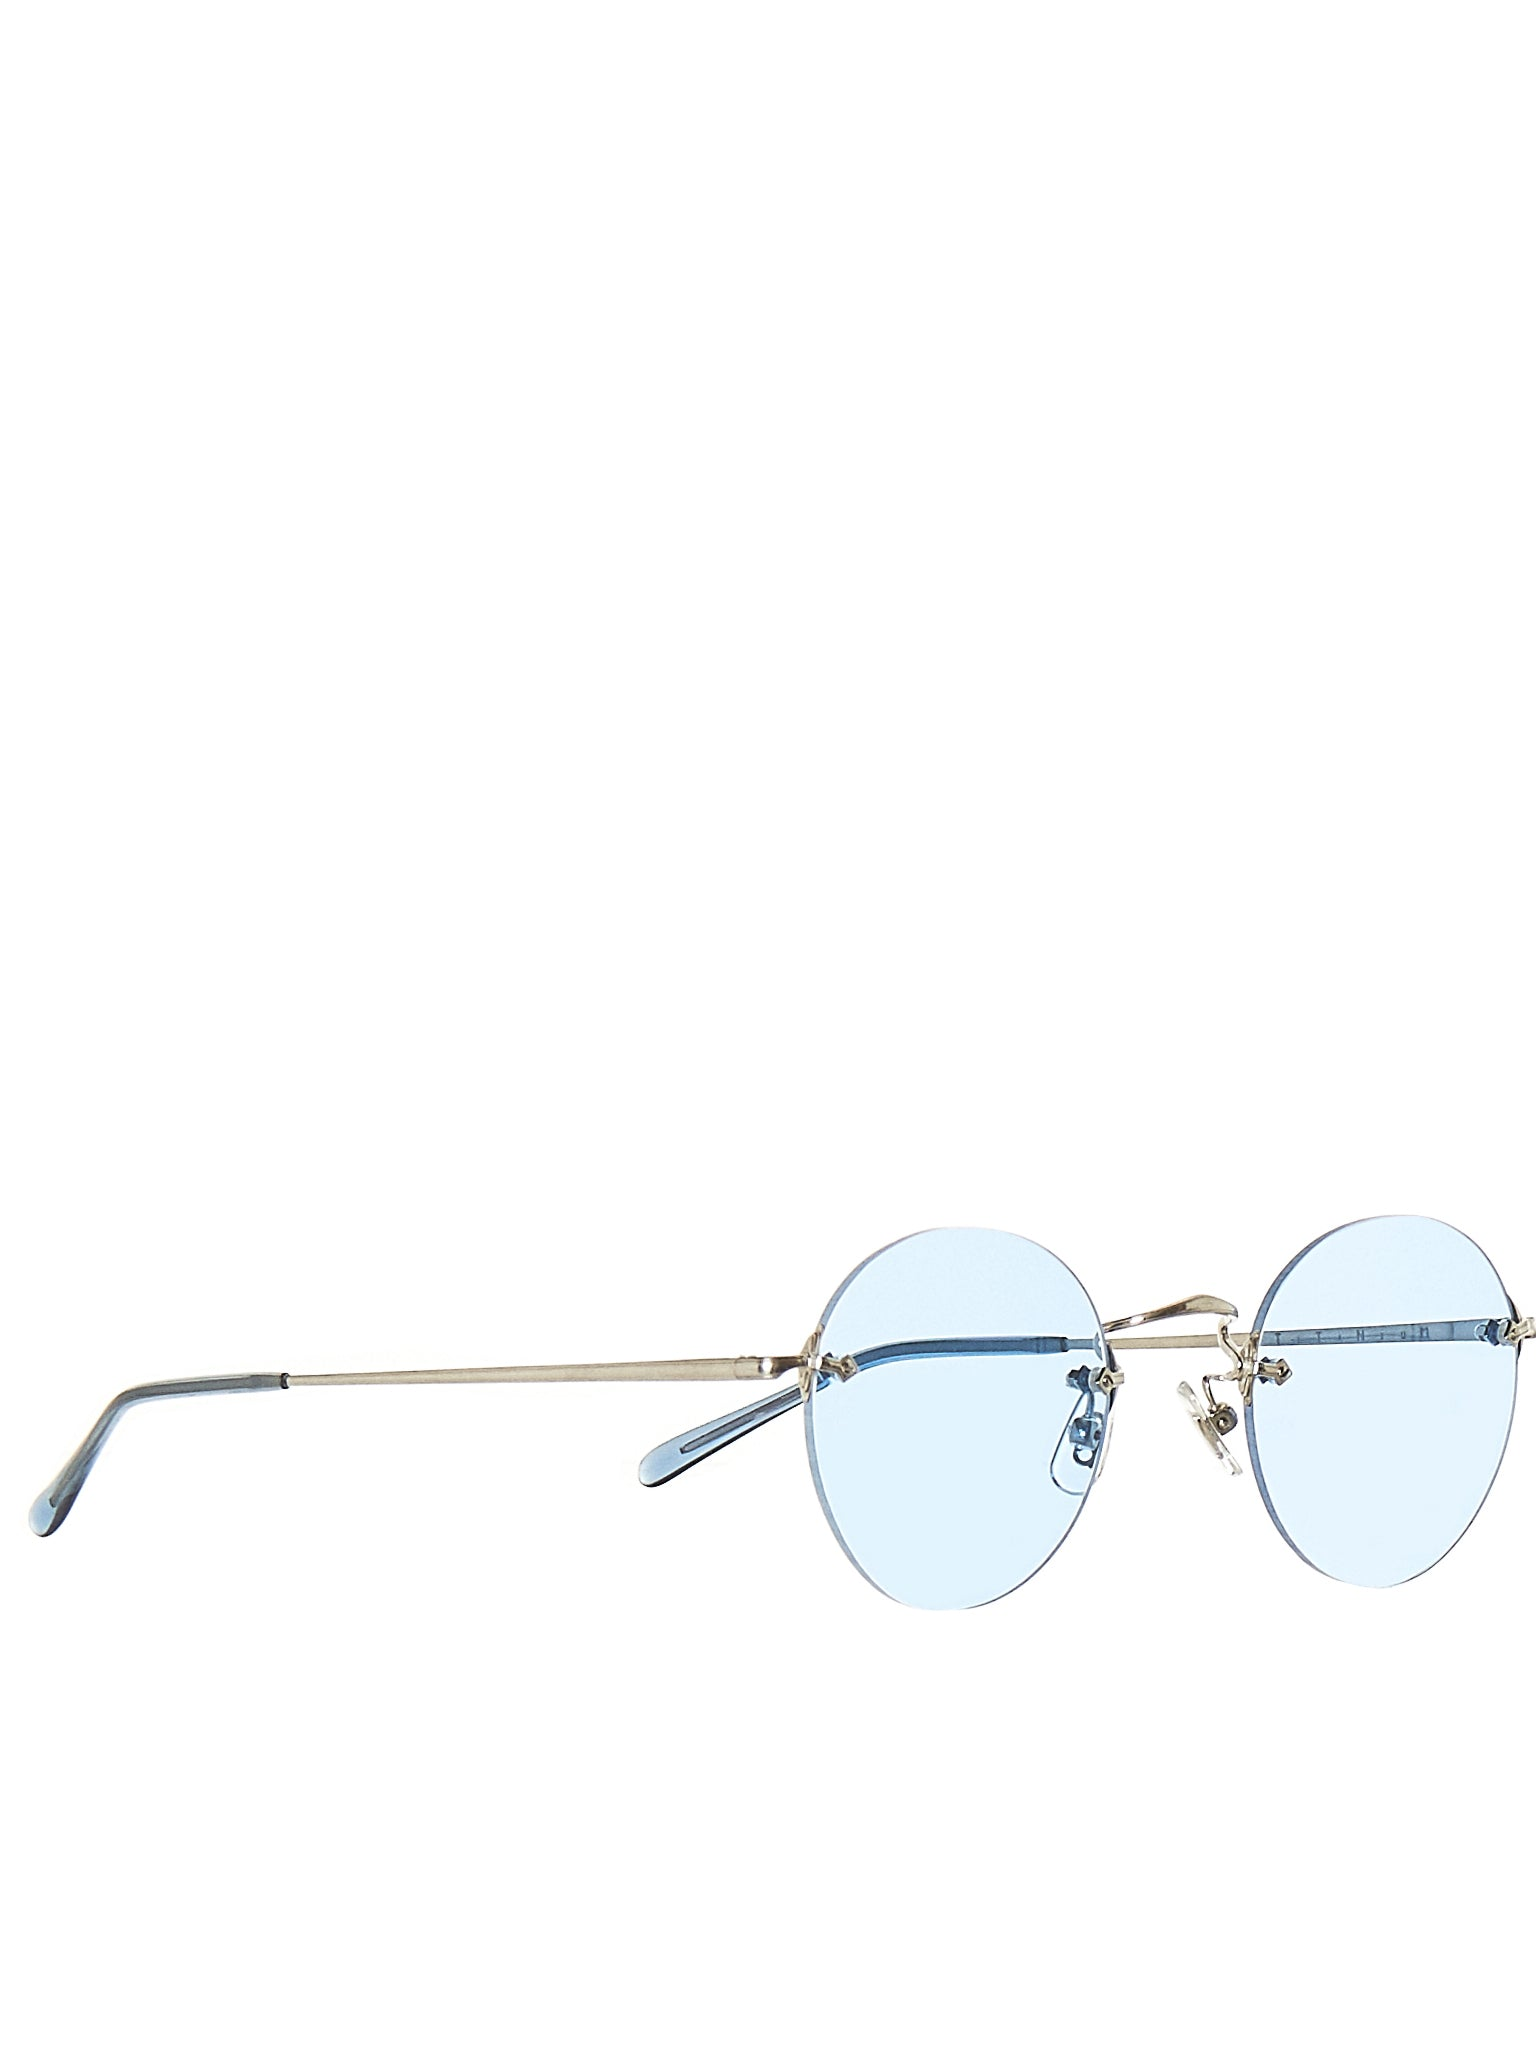 Hakusan Sunglasses - Hlorenzo Side